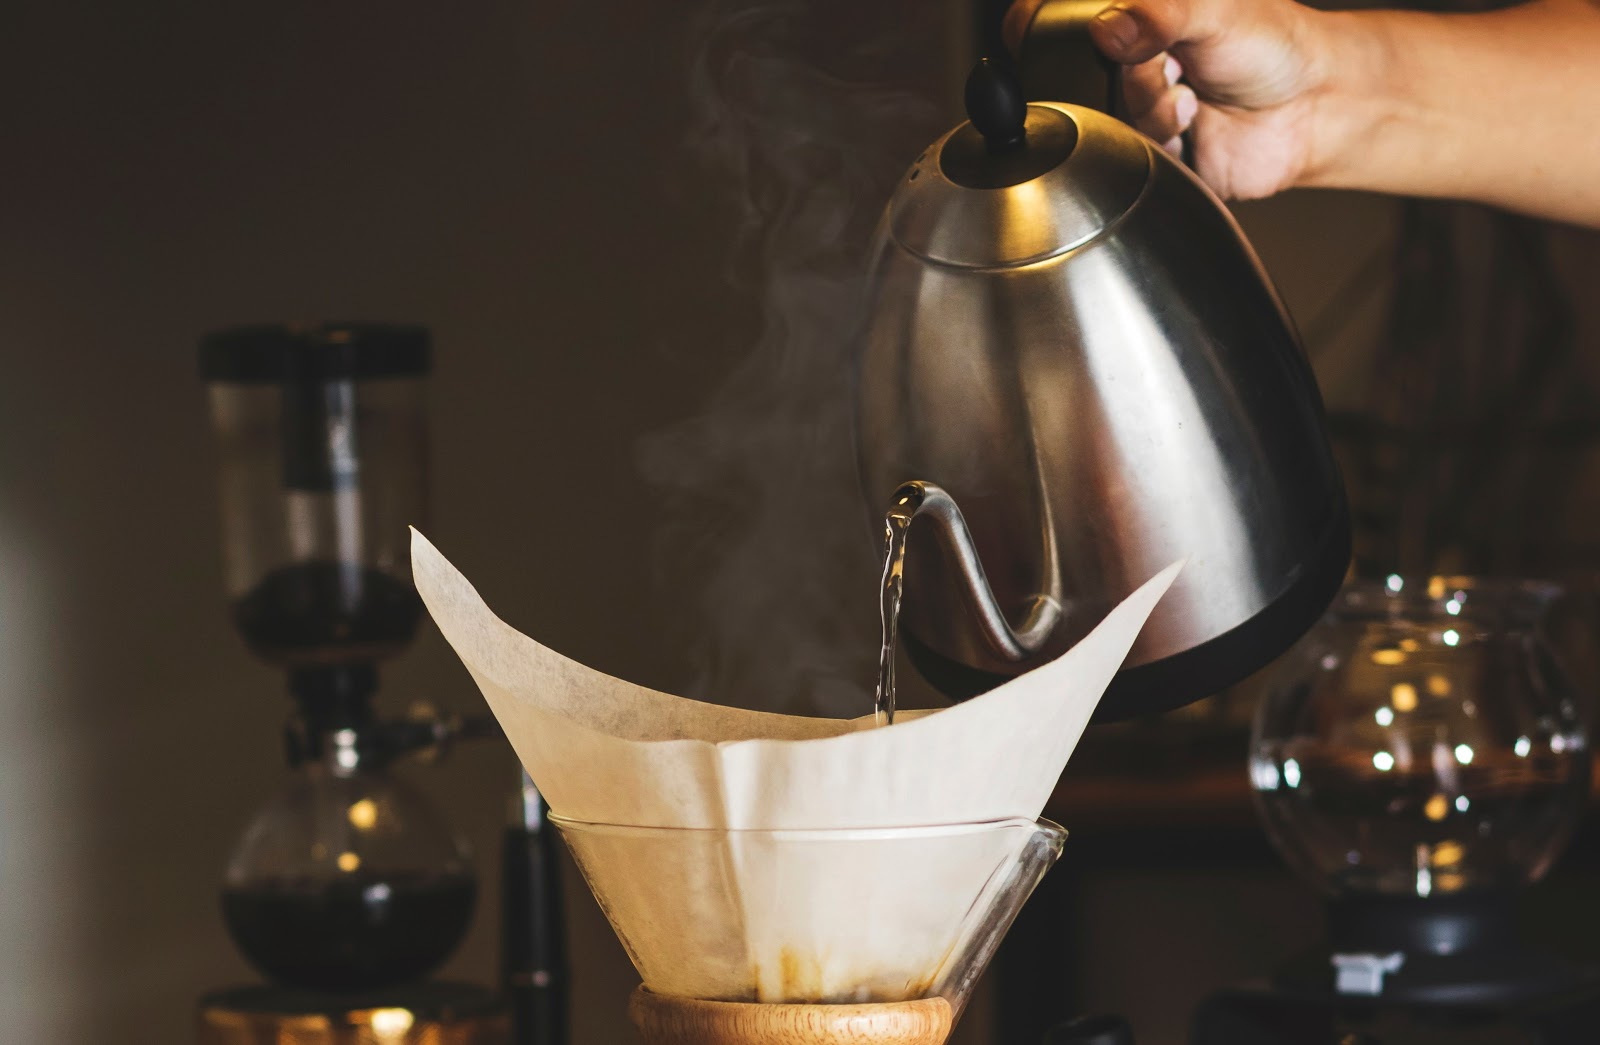 pouring hot water into a coffee filter of a chemex